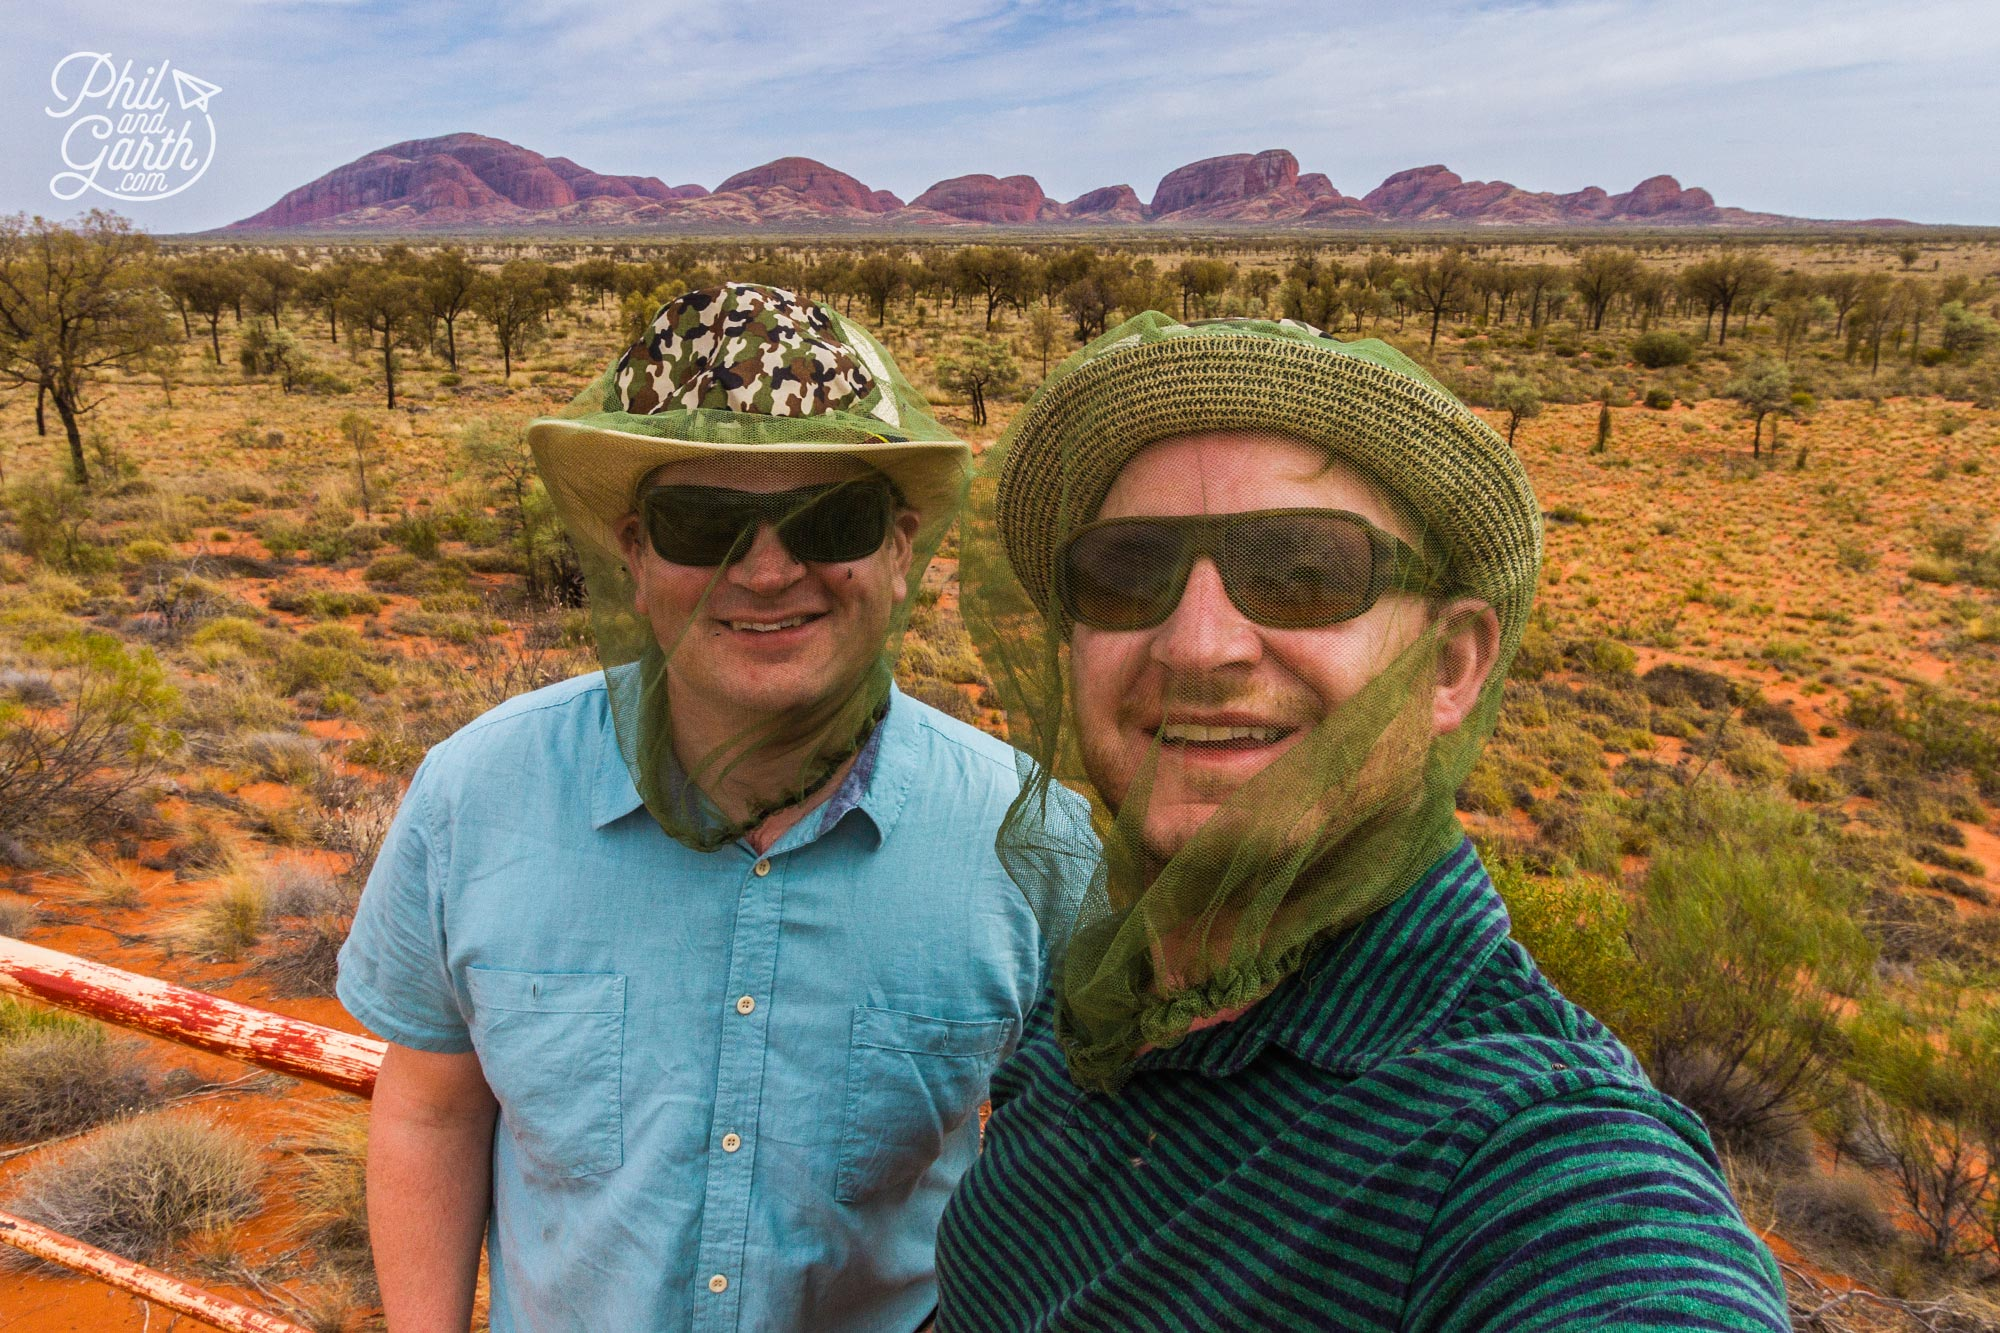 Our attractive face nets at a Kata Tjuta viewpoint